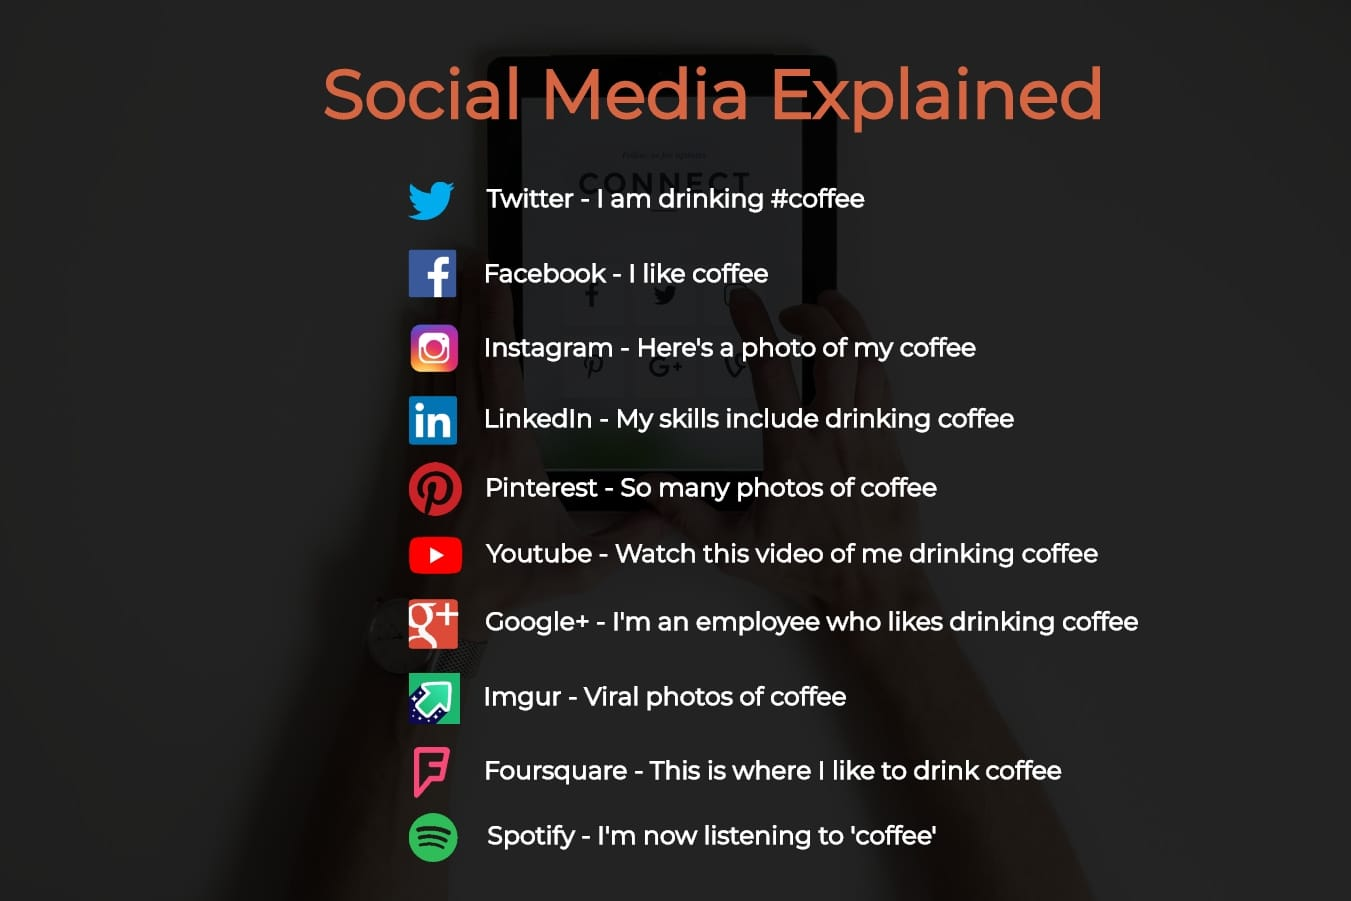 Image to show the breakdown of social media platforms with the use of coffee